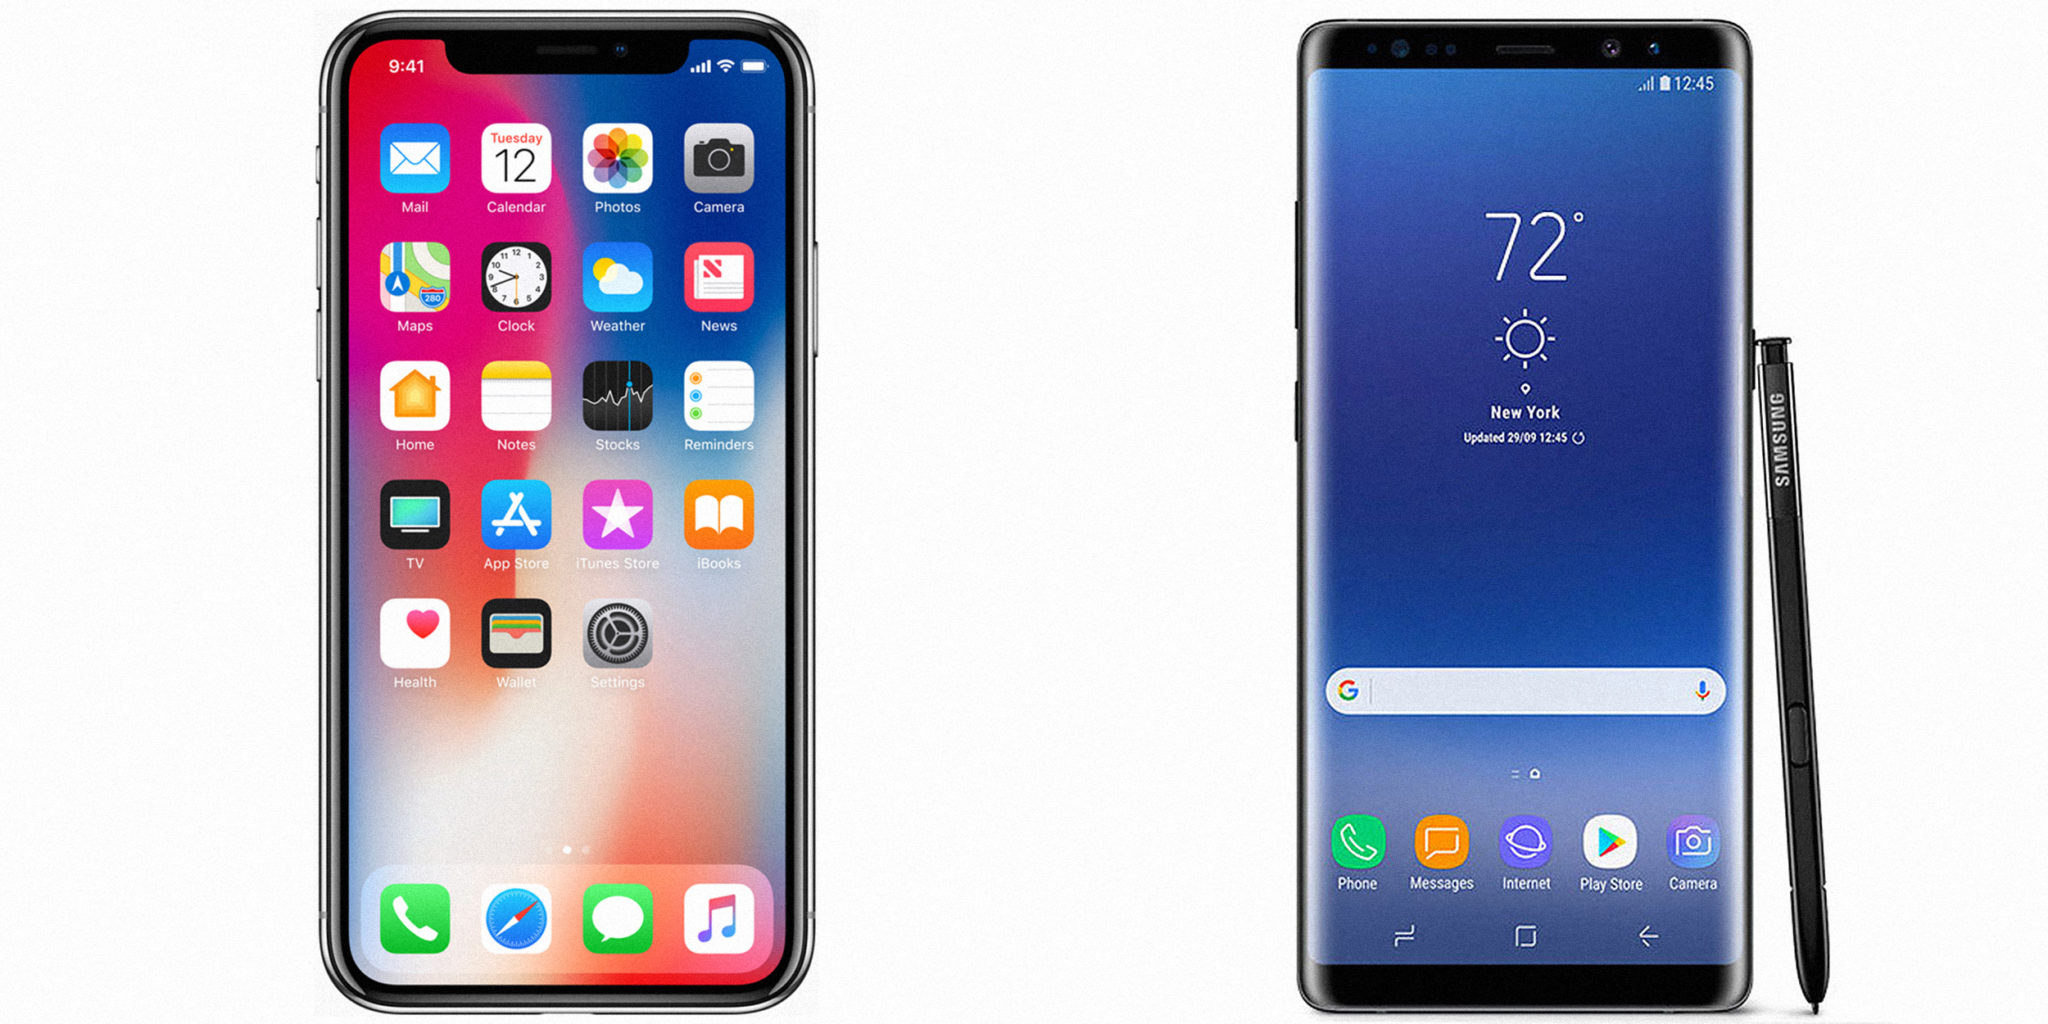 iPhone X sau Galaxy Note 8? Iată 4 caracteristici comparate!